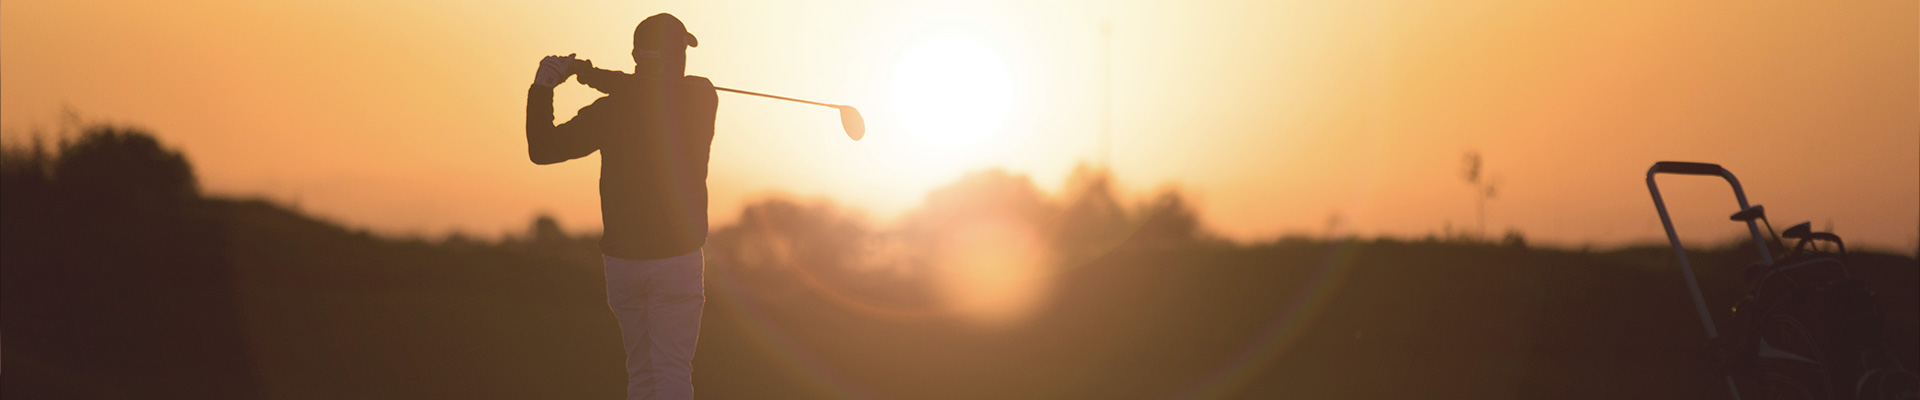 man playing golf in a sunset